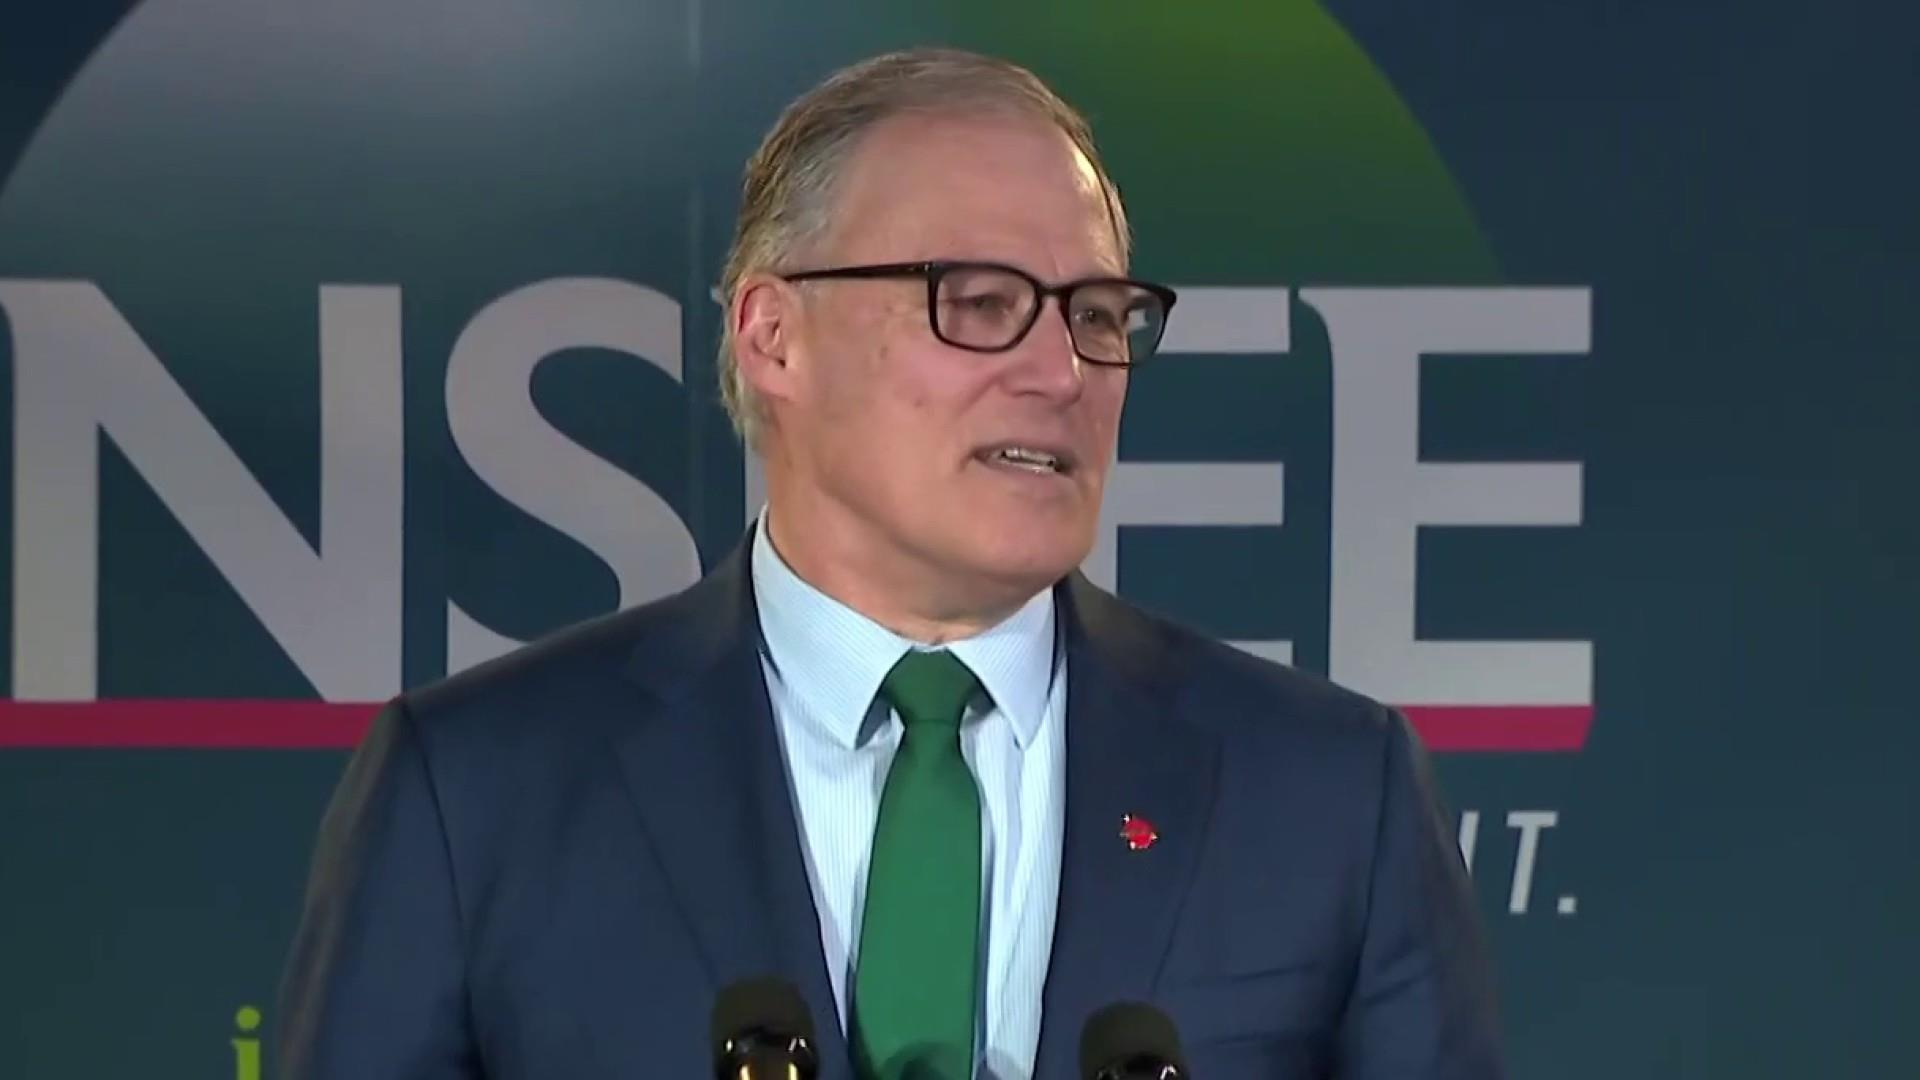 Jay Inslee focusing on climate change for his 2020 run